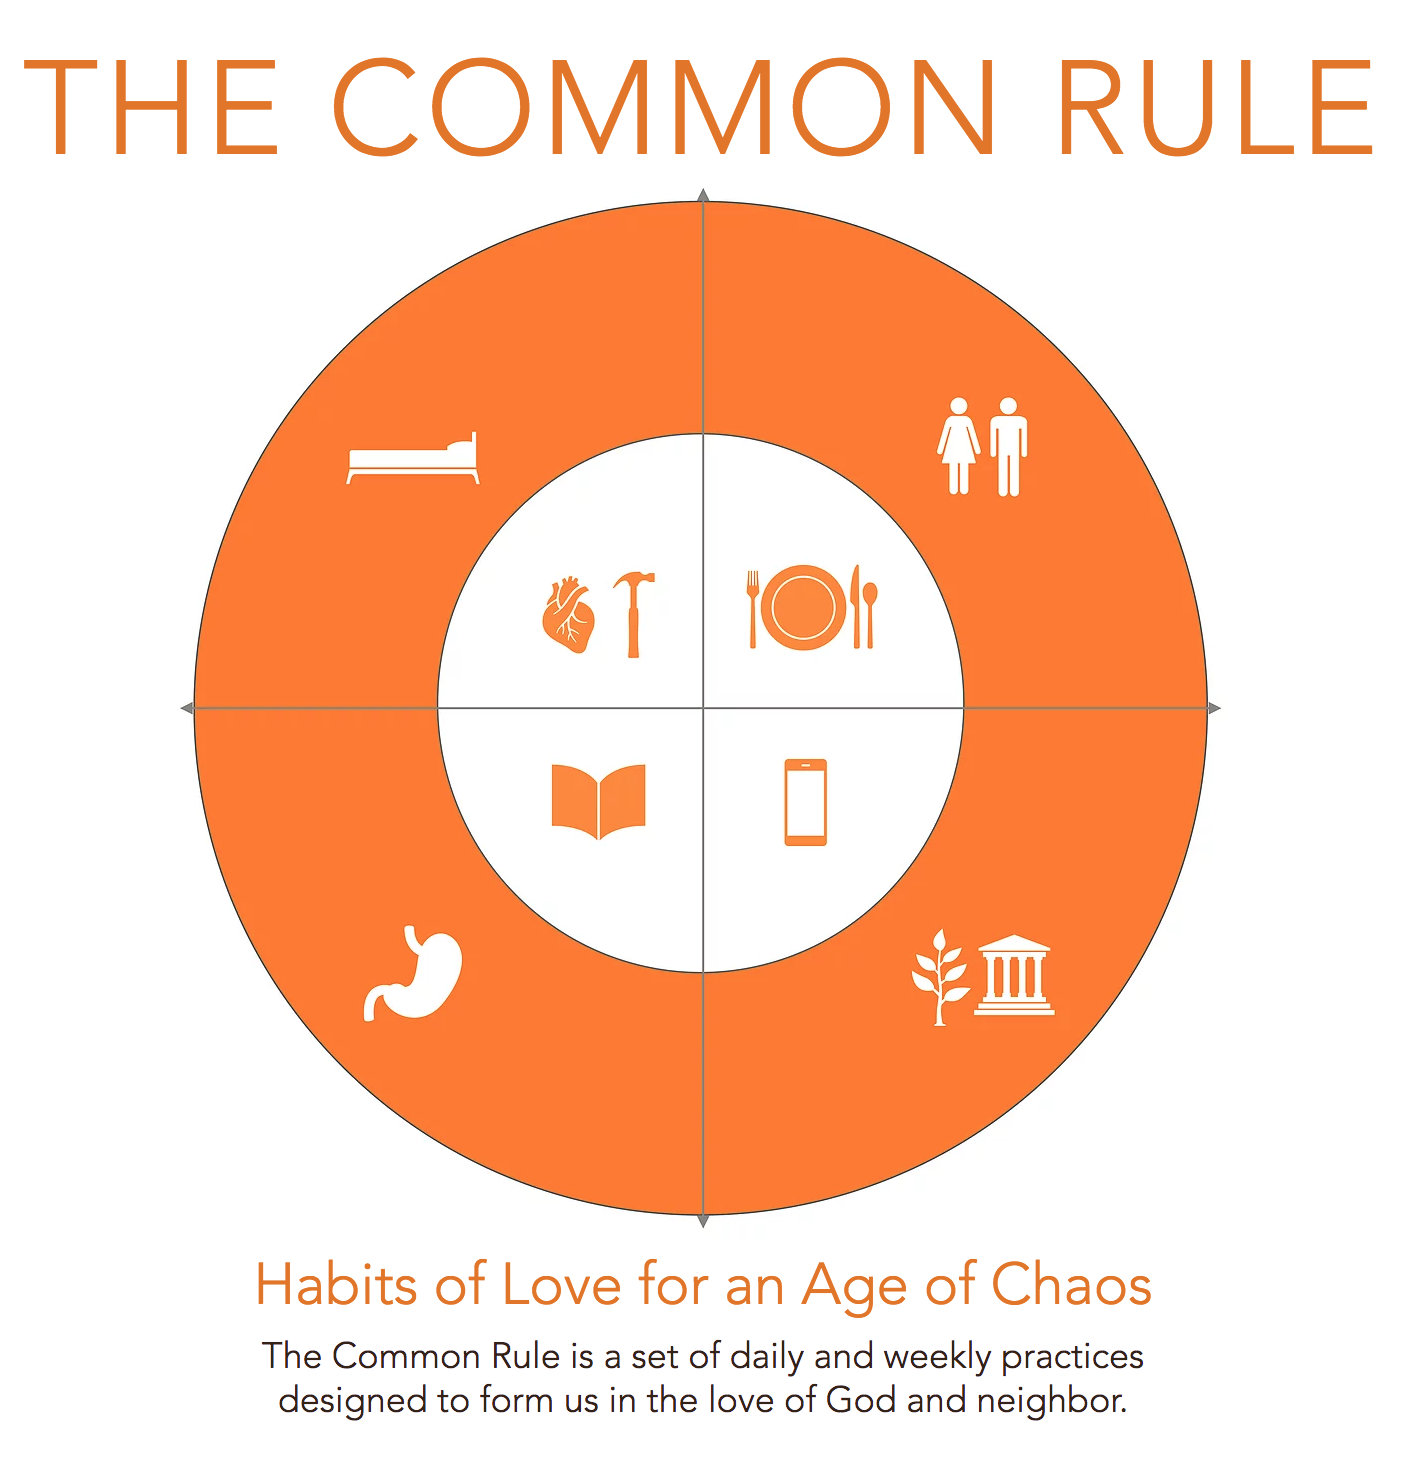 A handy graphic of the daily & weekly habits from The Common Rule.